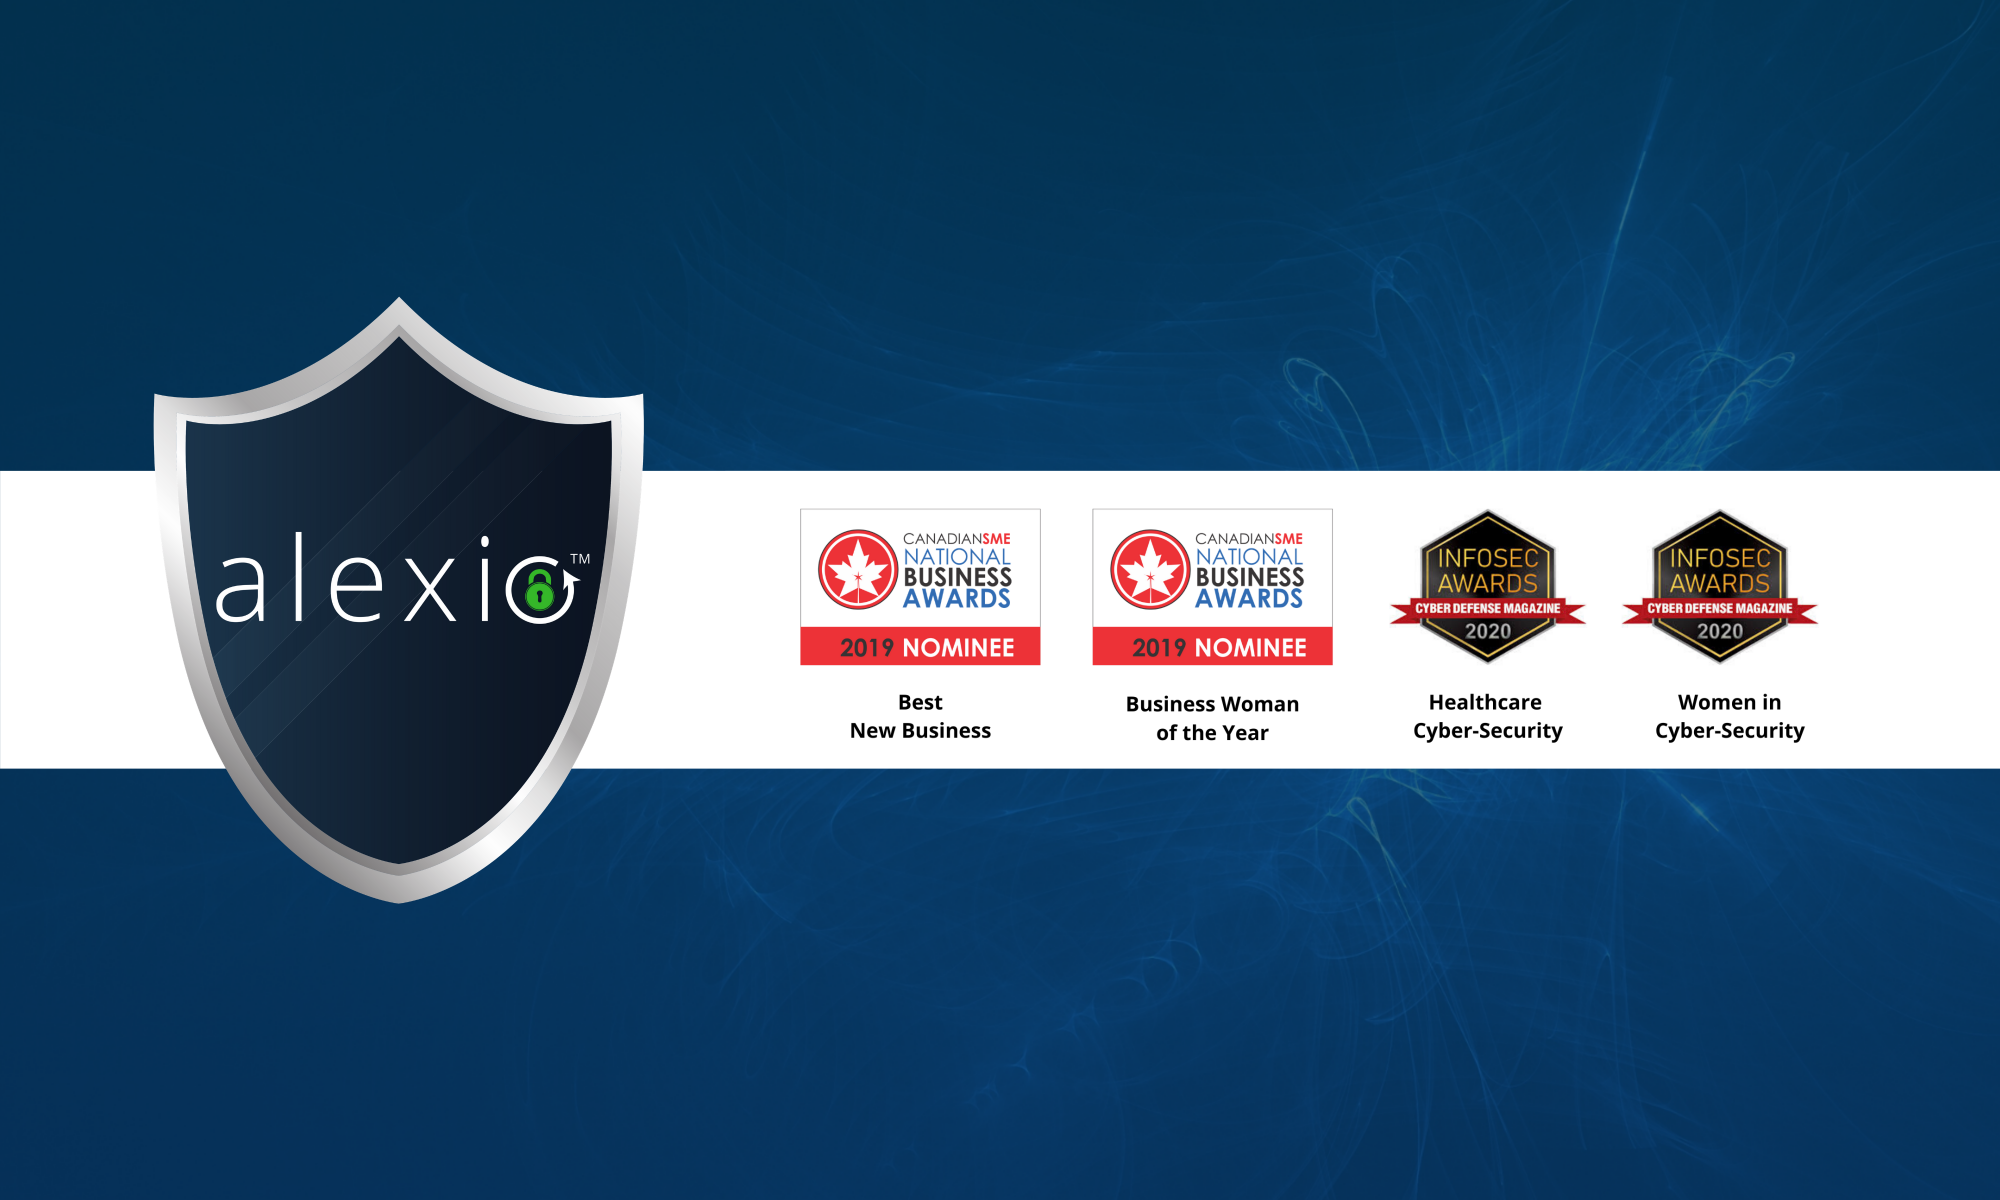 Alexio Awards Cyber Defence Awards Canadain Small Business Awards SME Awards Cyber-security